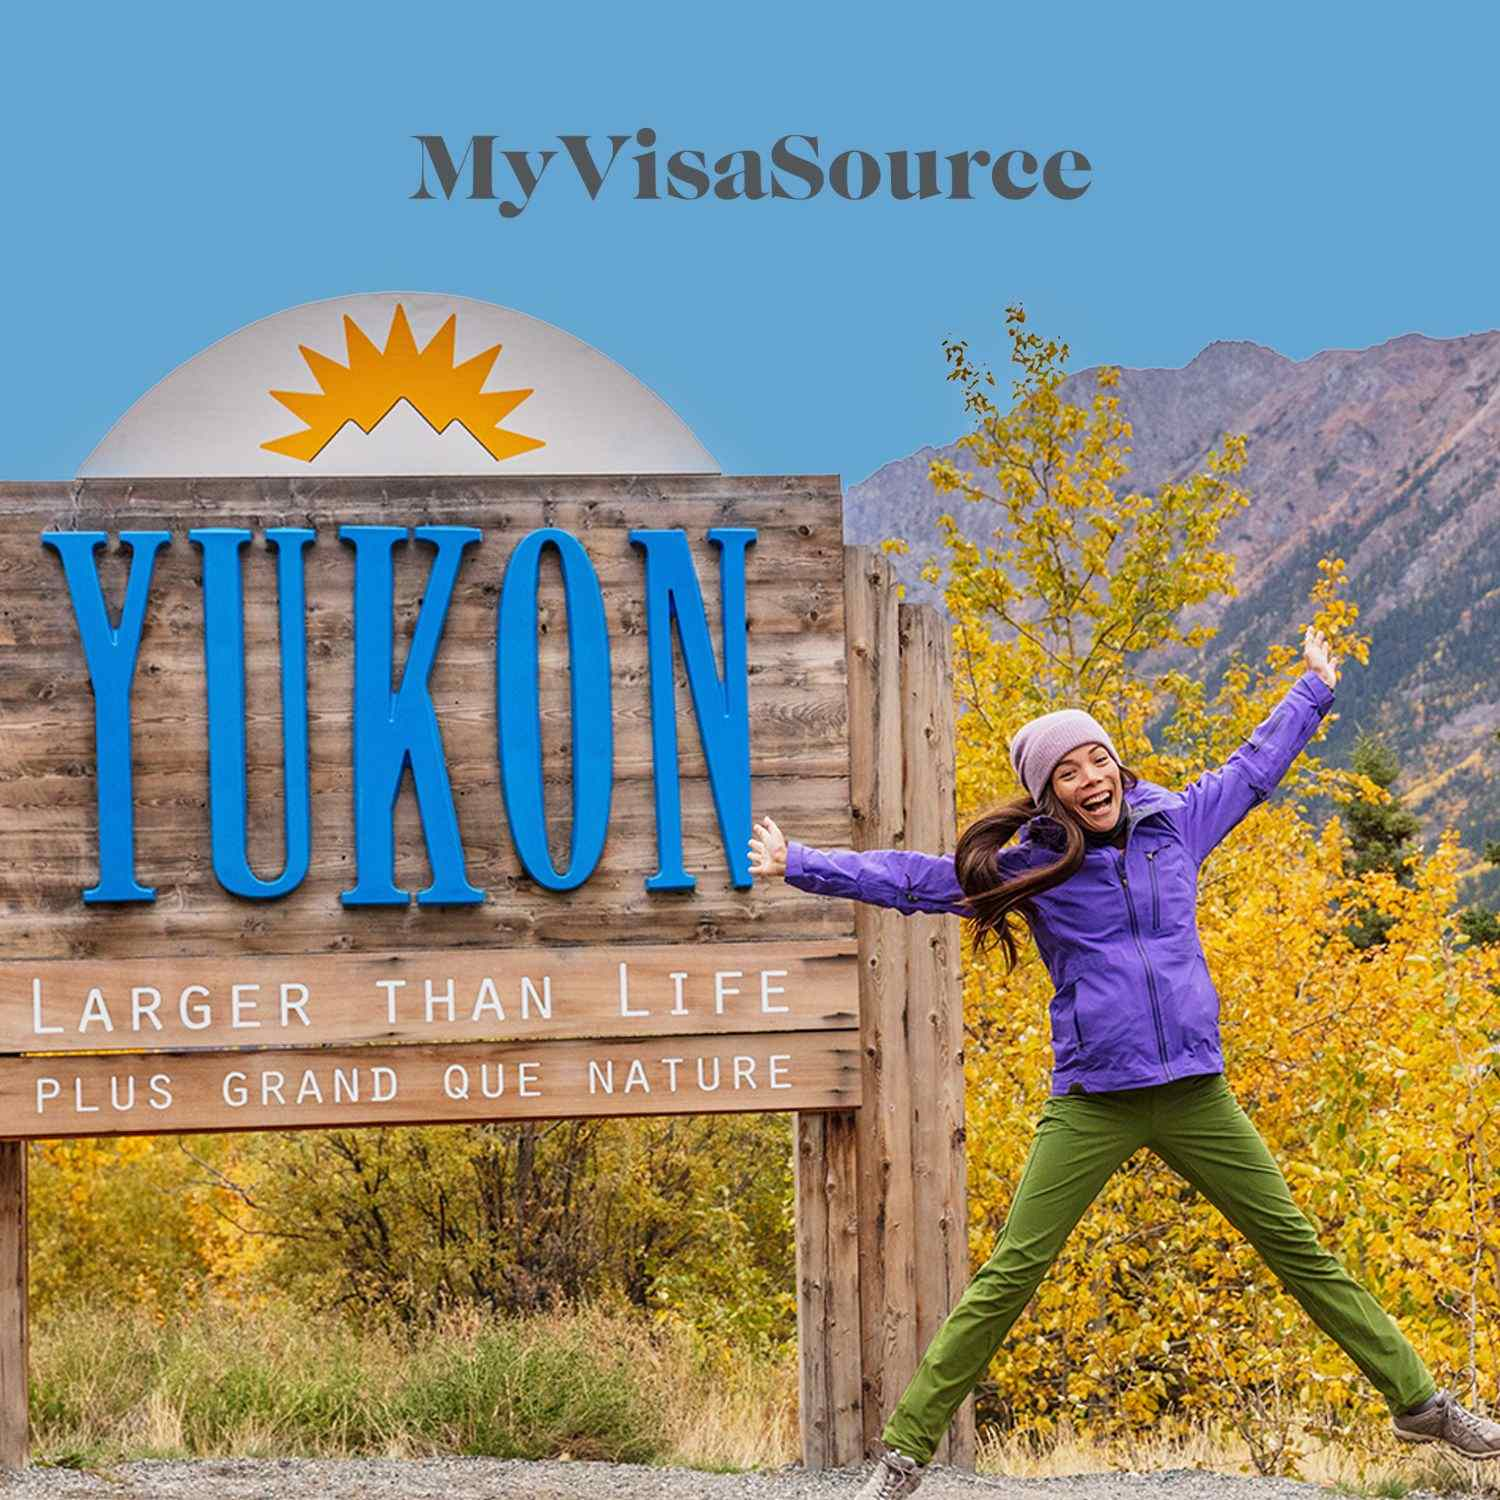 yukon territory sign with a girl jumping my visa source